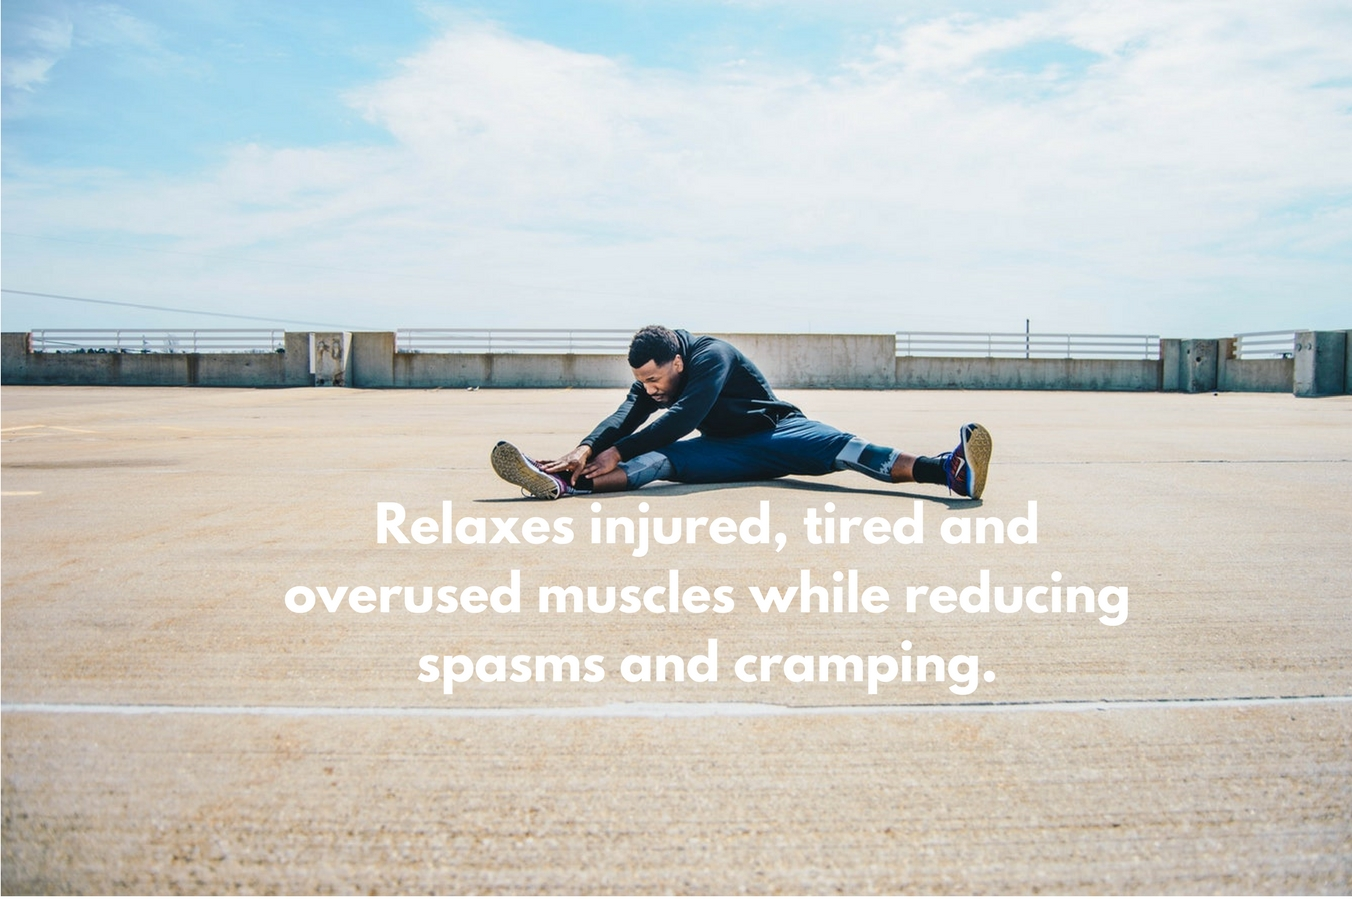 Reduce spasms and cramping.Relax and soften injured, tired, and overused muscles.jpg